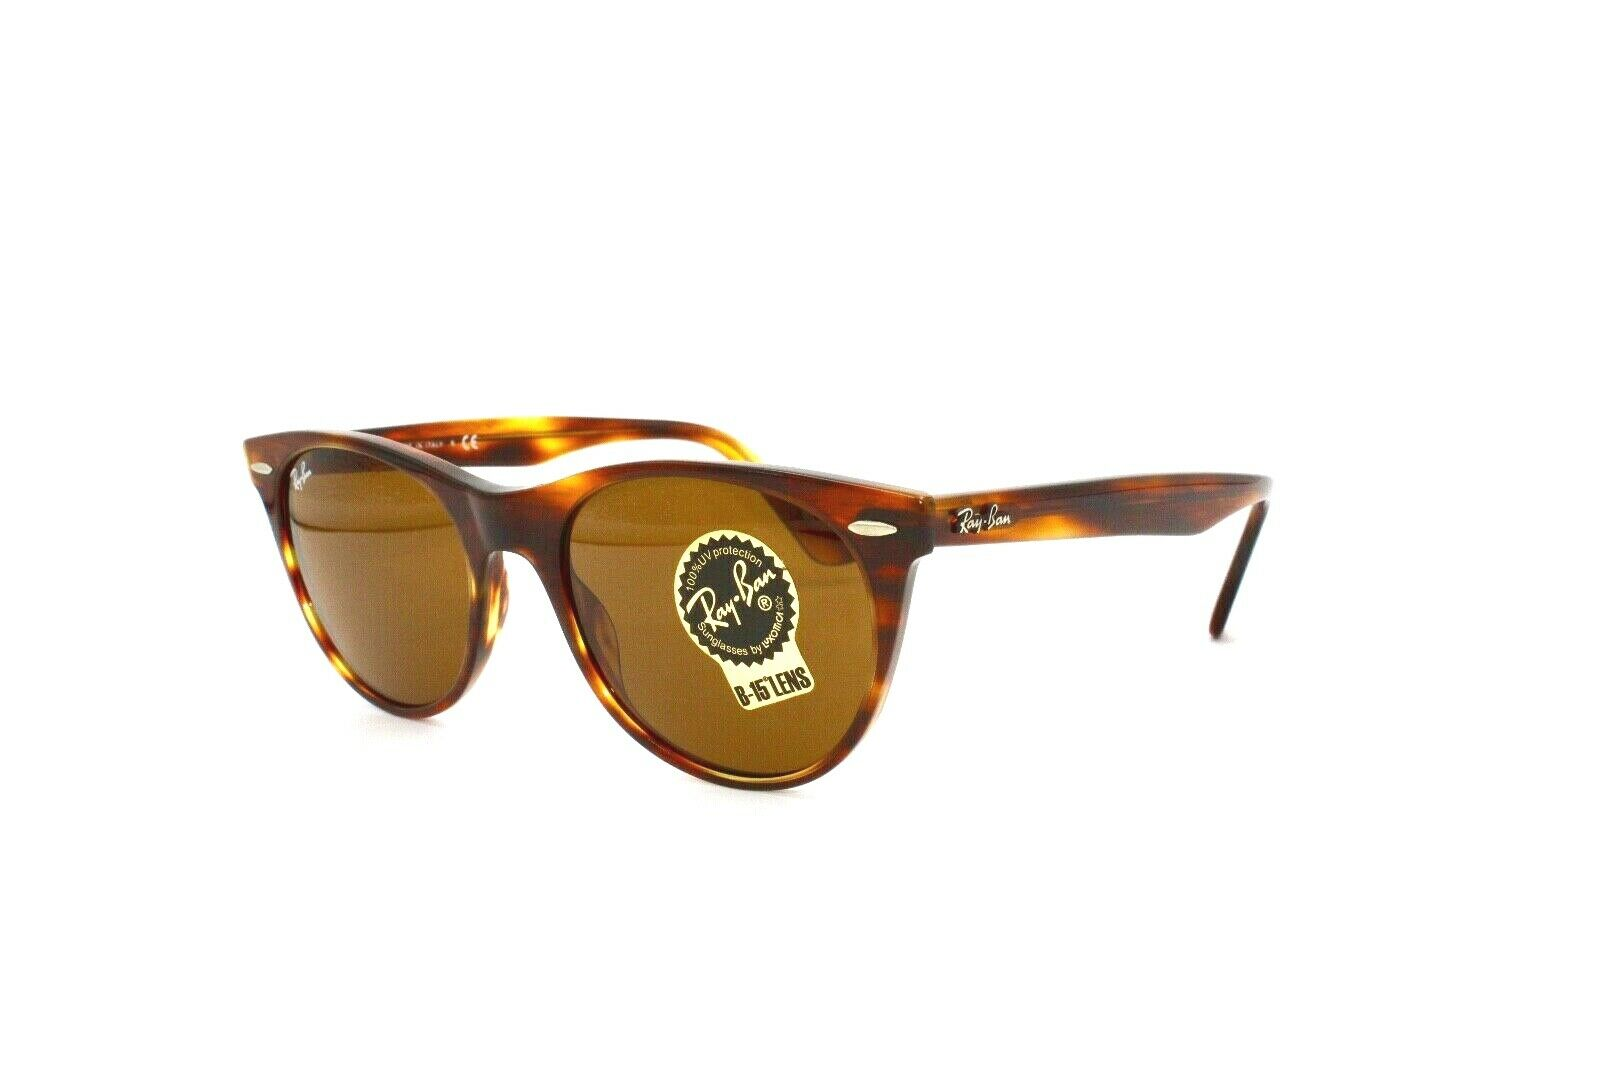 Ray Ban Sunglasses RB 2185 954/33 52 18 145 3N Made in Italy - Mydesigneroptic